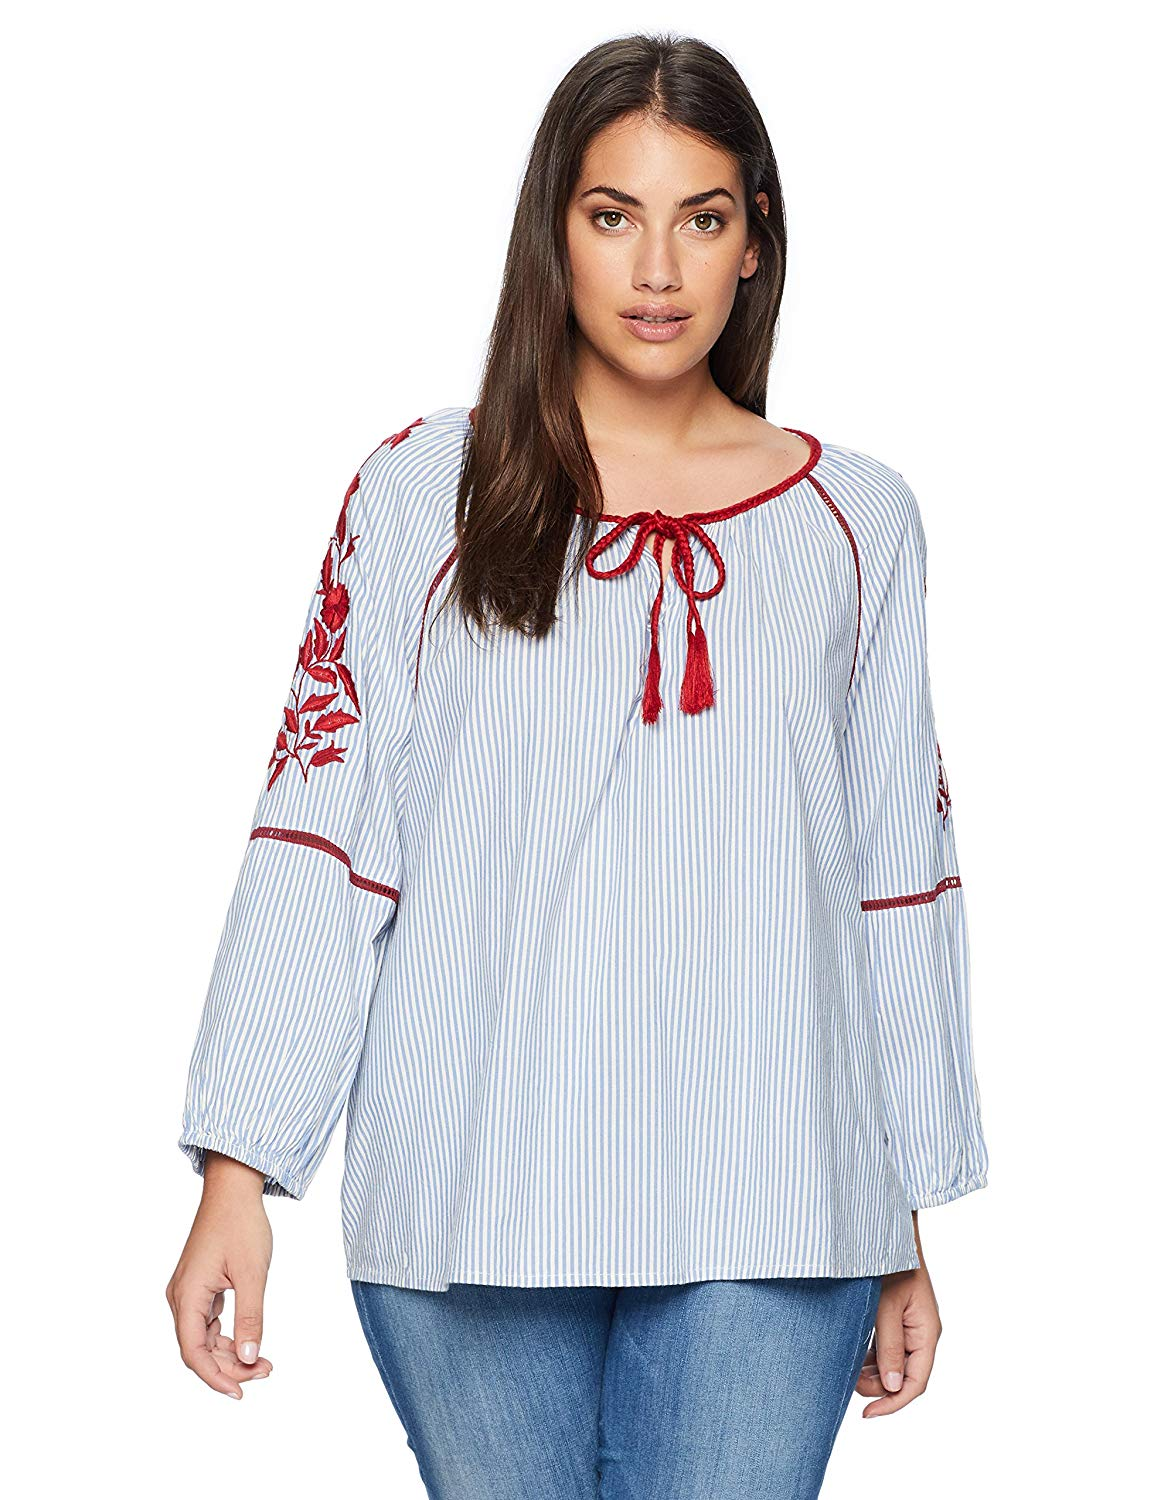 5748407c4d4 Get Quotations · Vintage America Blues Women s Plus Size Dylan Stripe Peasant  Top with Embroidery